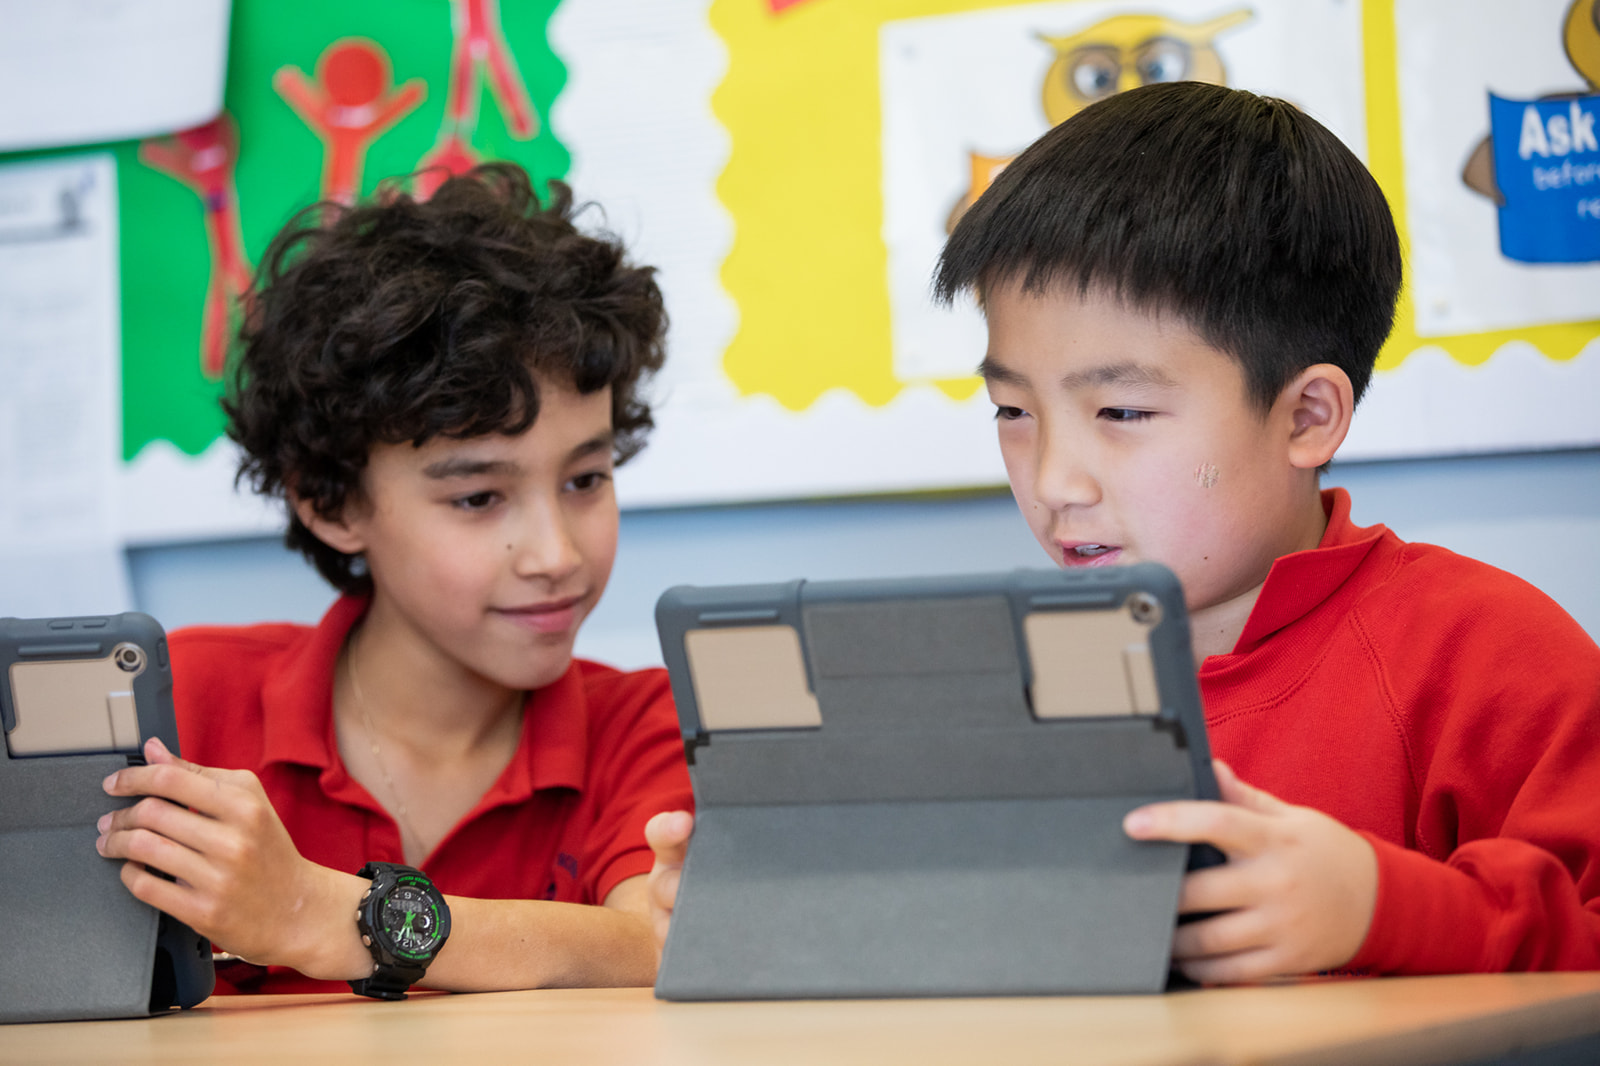 Pupils working together in class on IPads